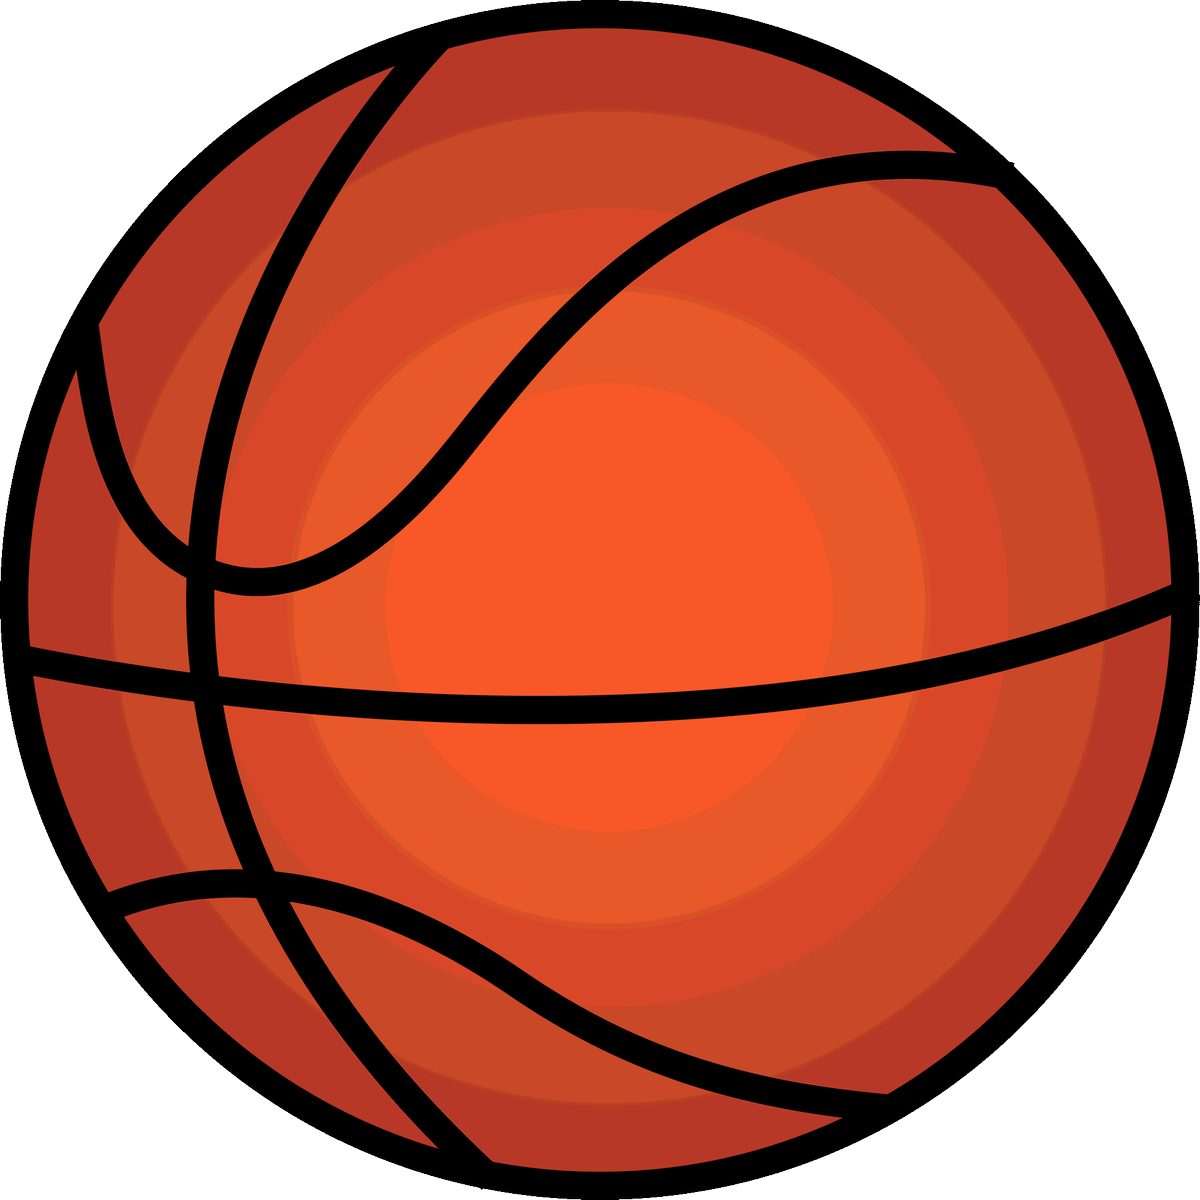 Irish playing basketball clipart transparent library Washington Local SD on Twitter: